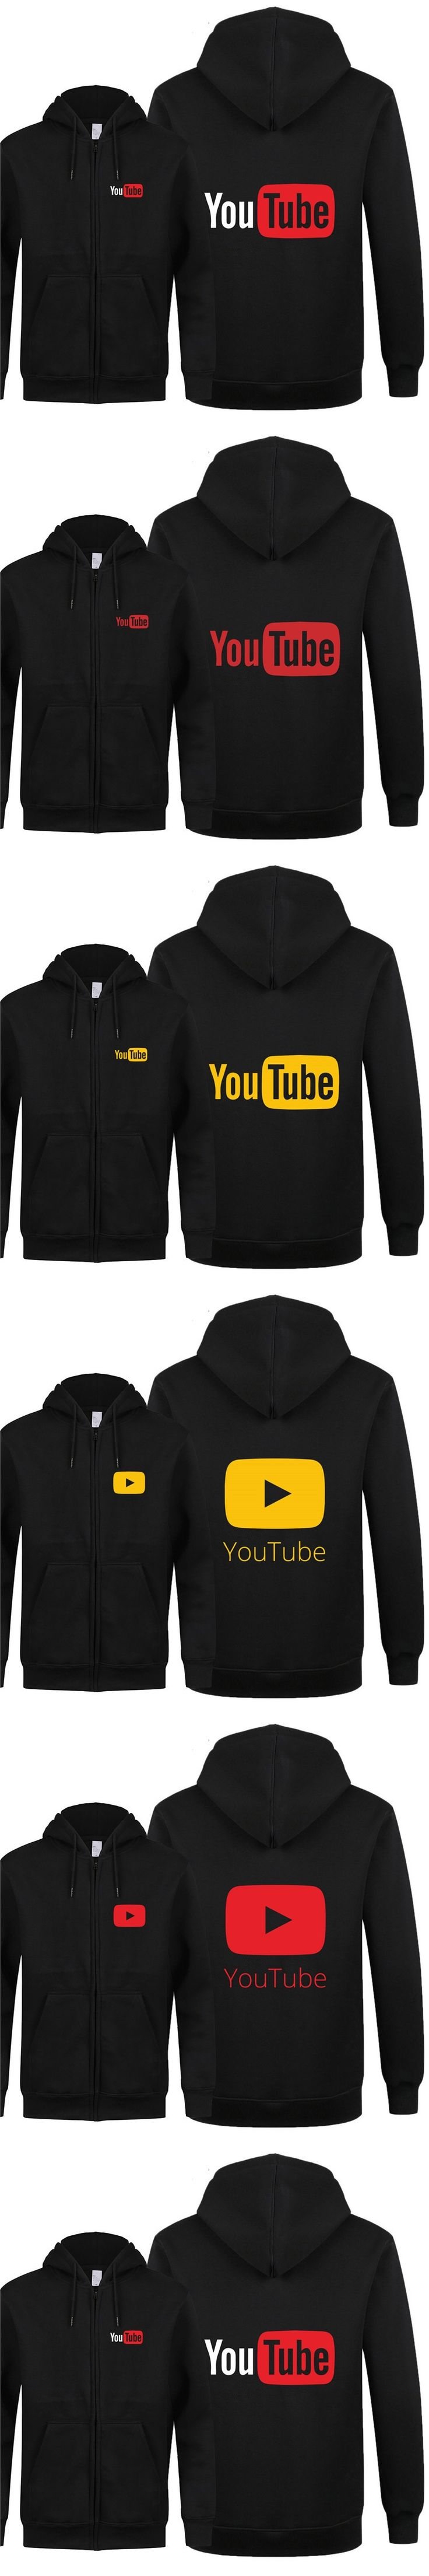 2018 New Autumn Funny Youtube Logo Printed Hoodies Men You Tube Zipper Hoodies Fleece Sweatshirt Cotton Jacket Men Coat